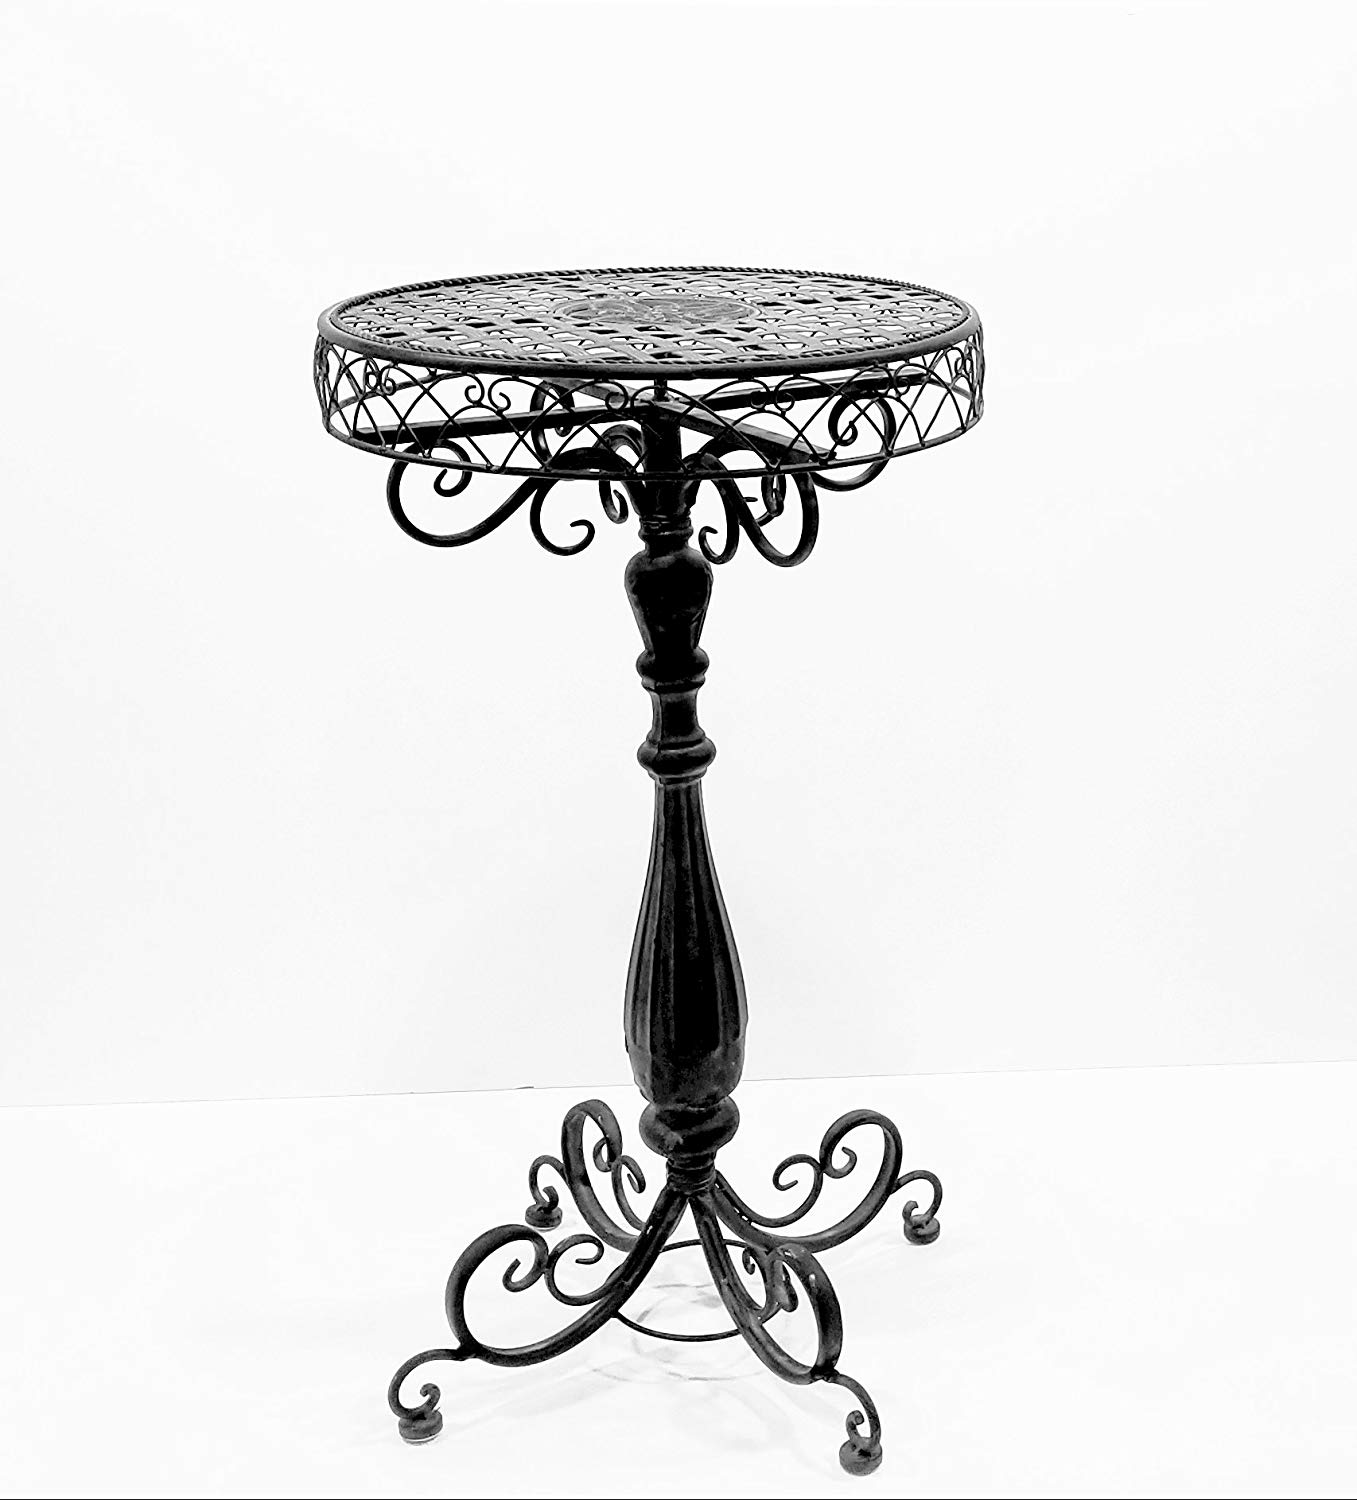 white kitchen distressed tops tablecloths and marble for granite topper bulk patio pedestal black pub garden high end top accent table small tablecloth round dining chairs